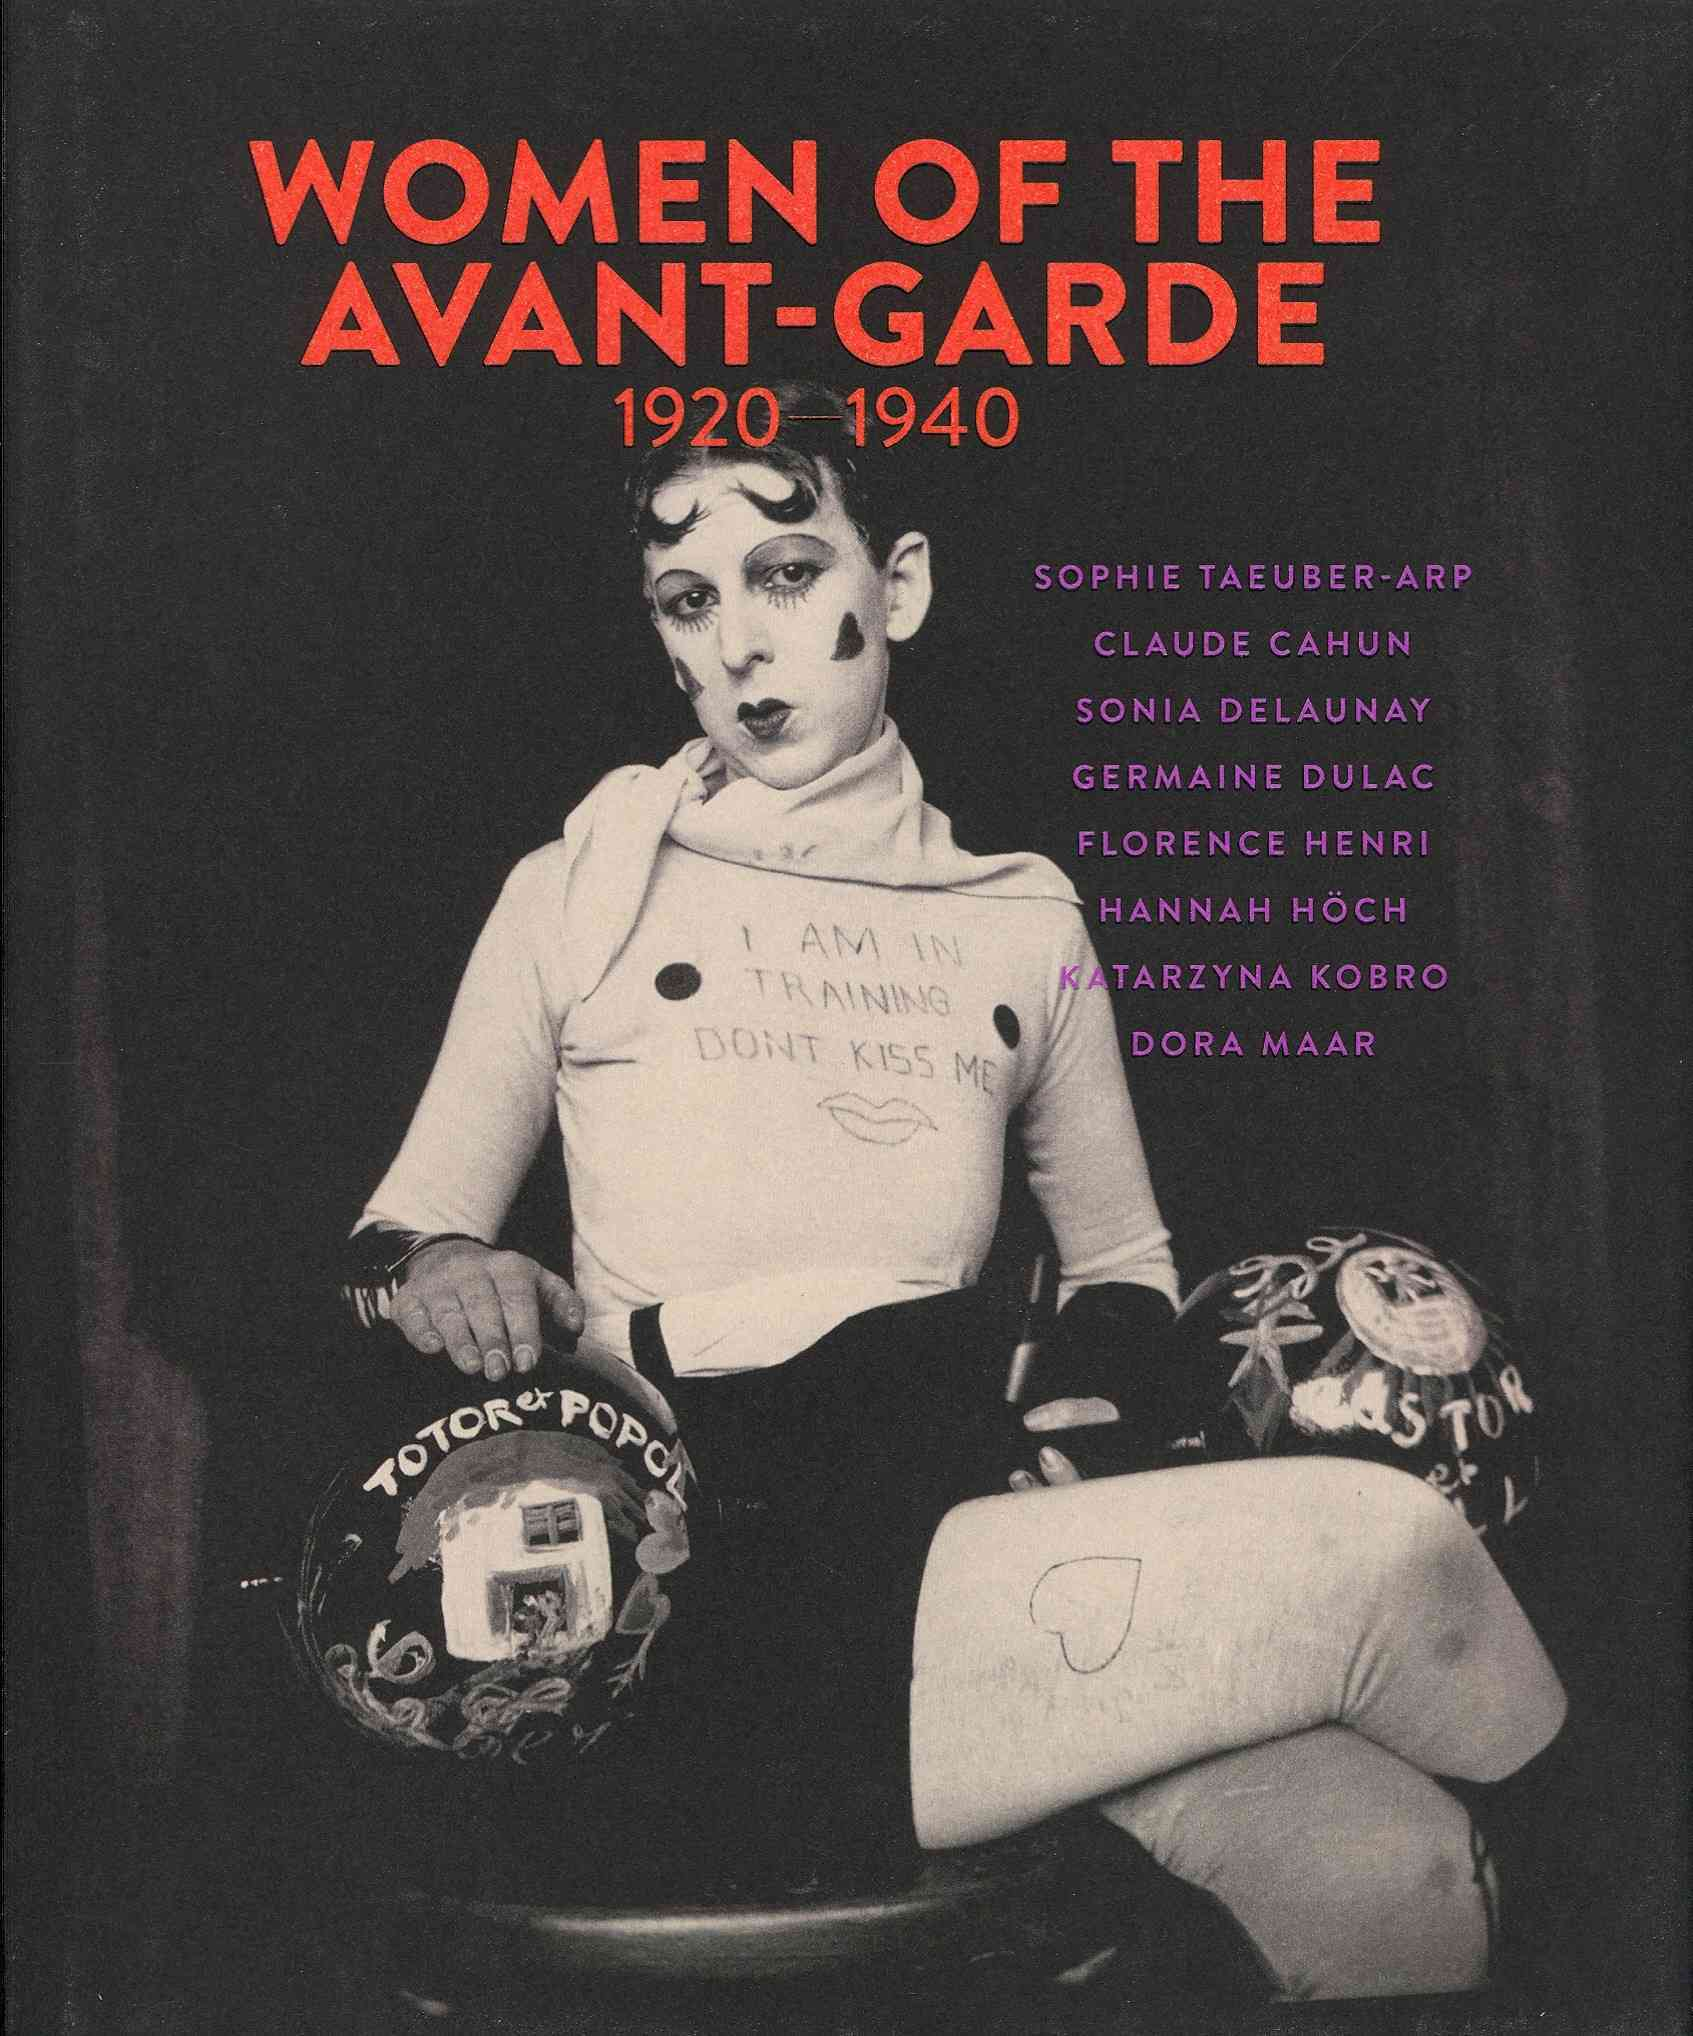 Women of the Avant-Garde 1920-1940 By Juul Holm, Michael (EDT)/ Marcus, Mette/ Degel, Kirsten (EDT)/ Rank, Jeanne (EDT)